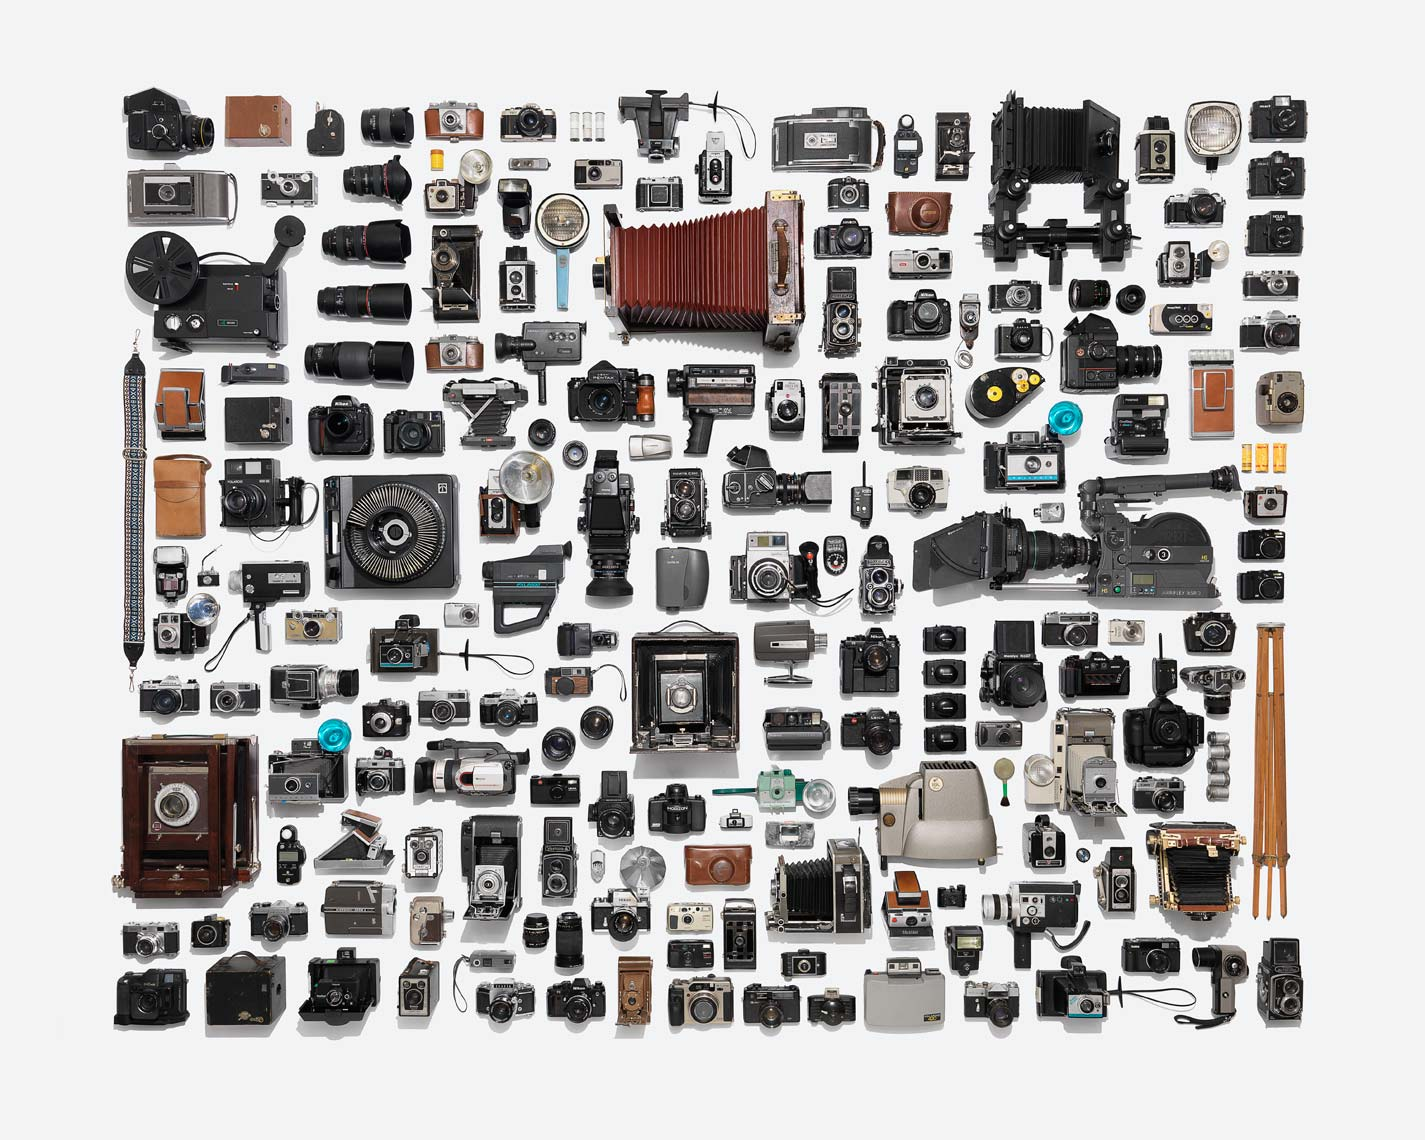 large camera collection from overhead on a white background